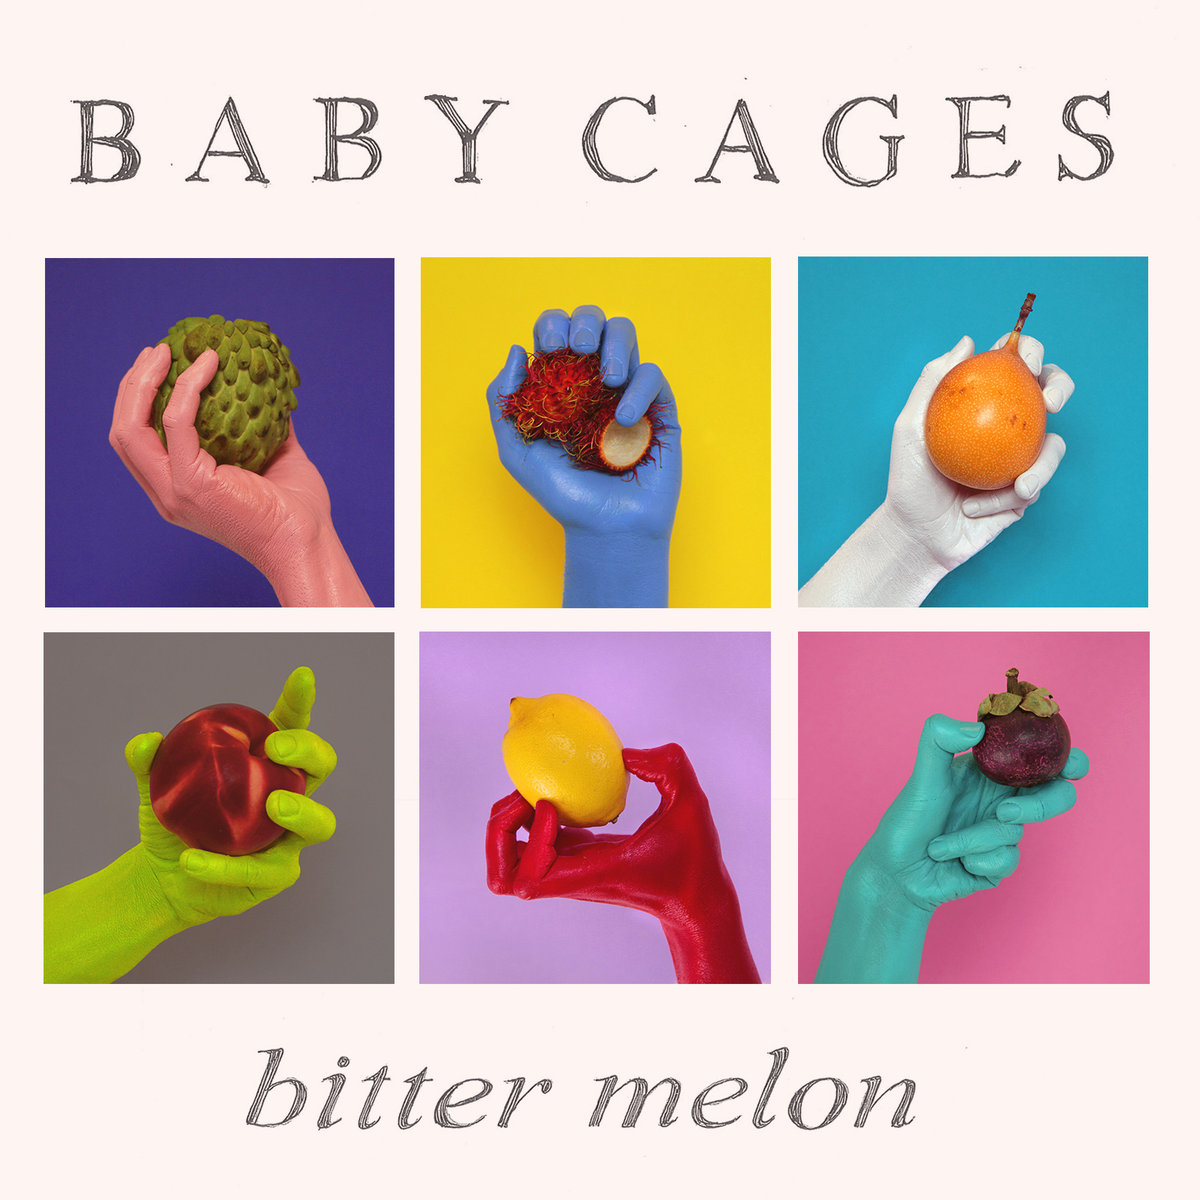 Baby Cages - Bitter Melon  Artwork by Kate Young